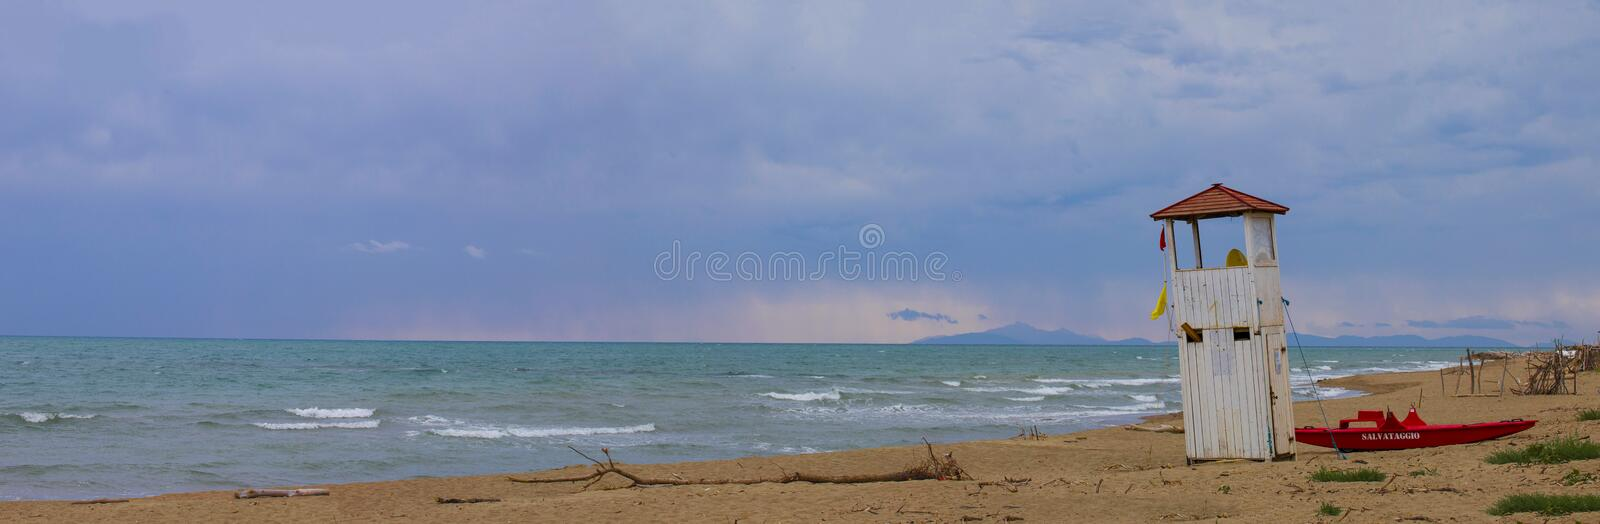 panoramic image of a seascape with desolate sand beach and a lifeguard tower and rowing boat stock image